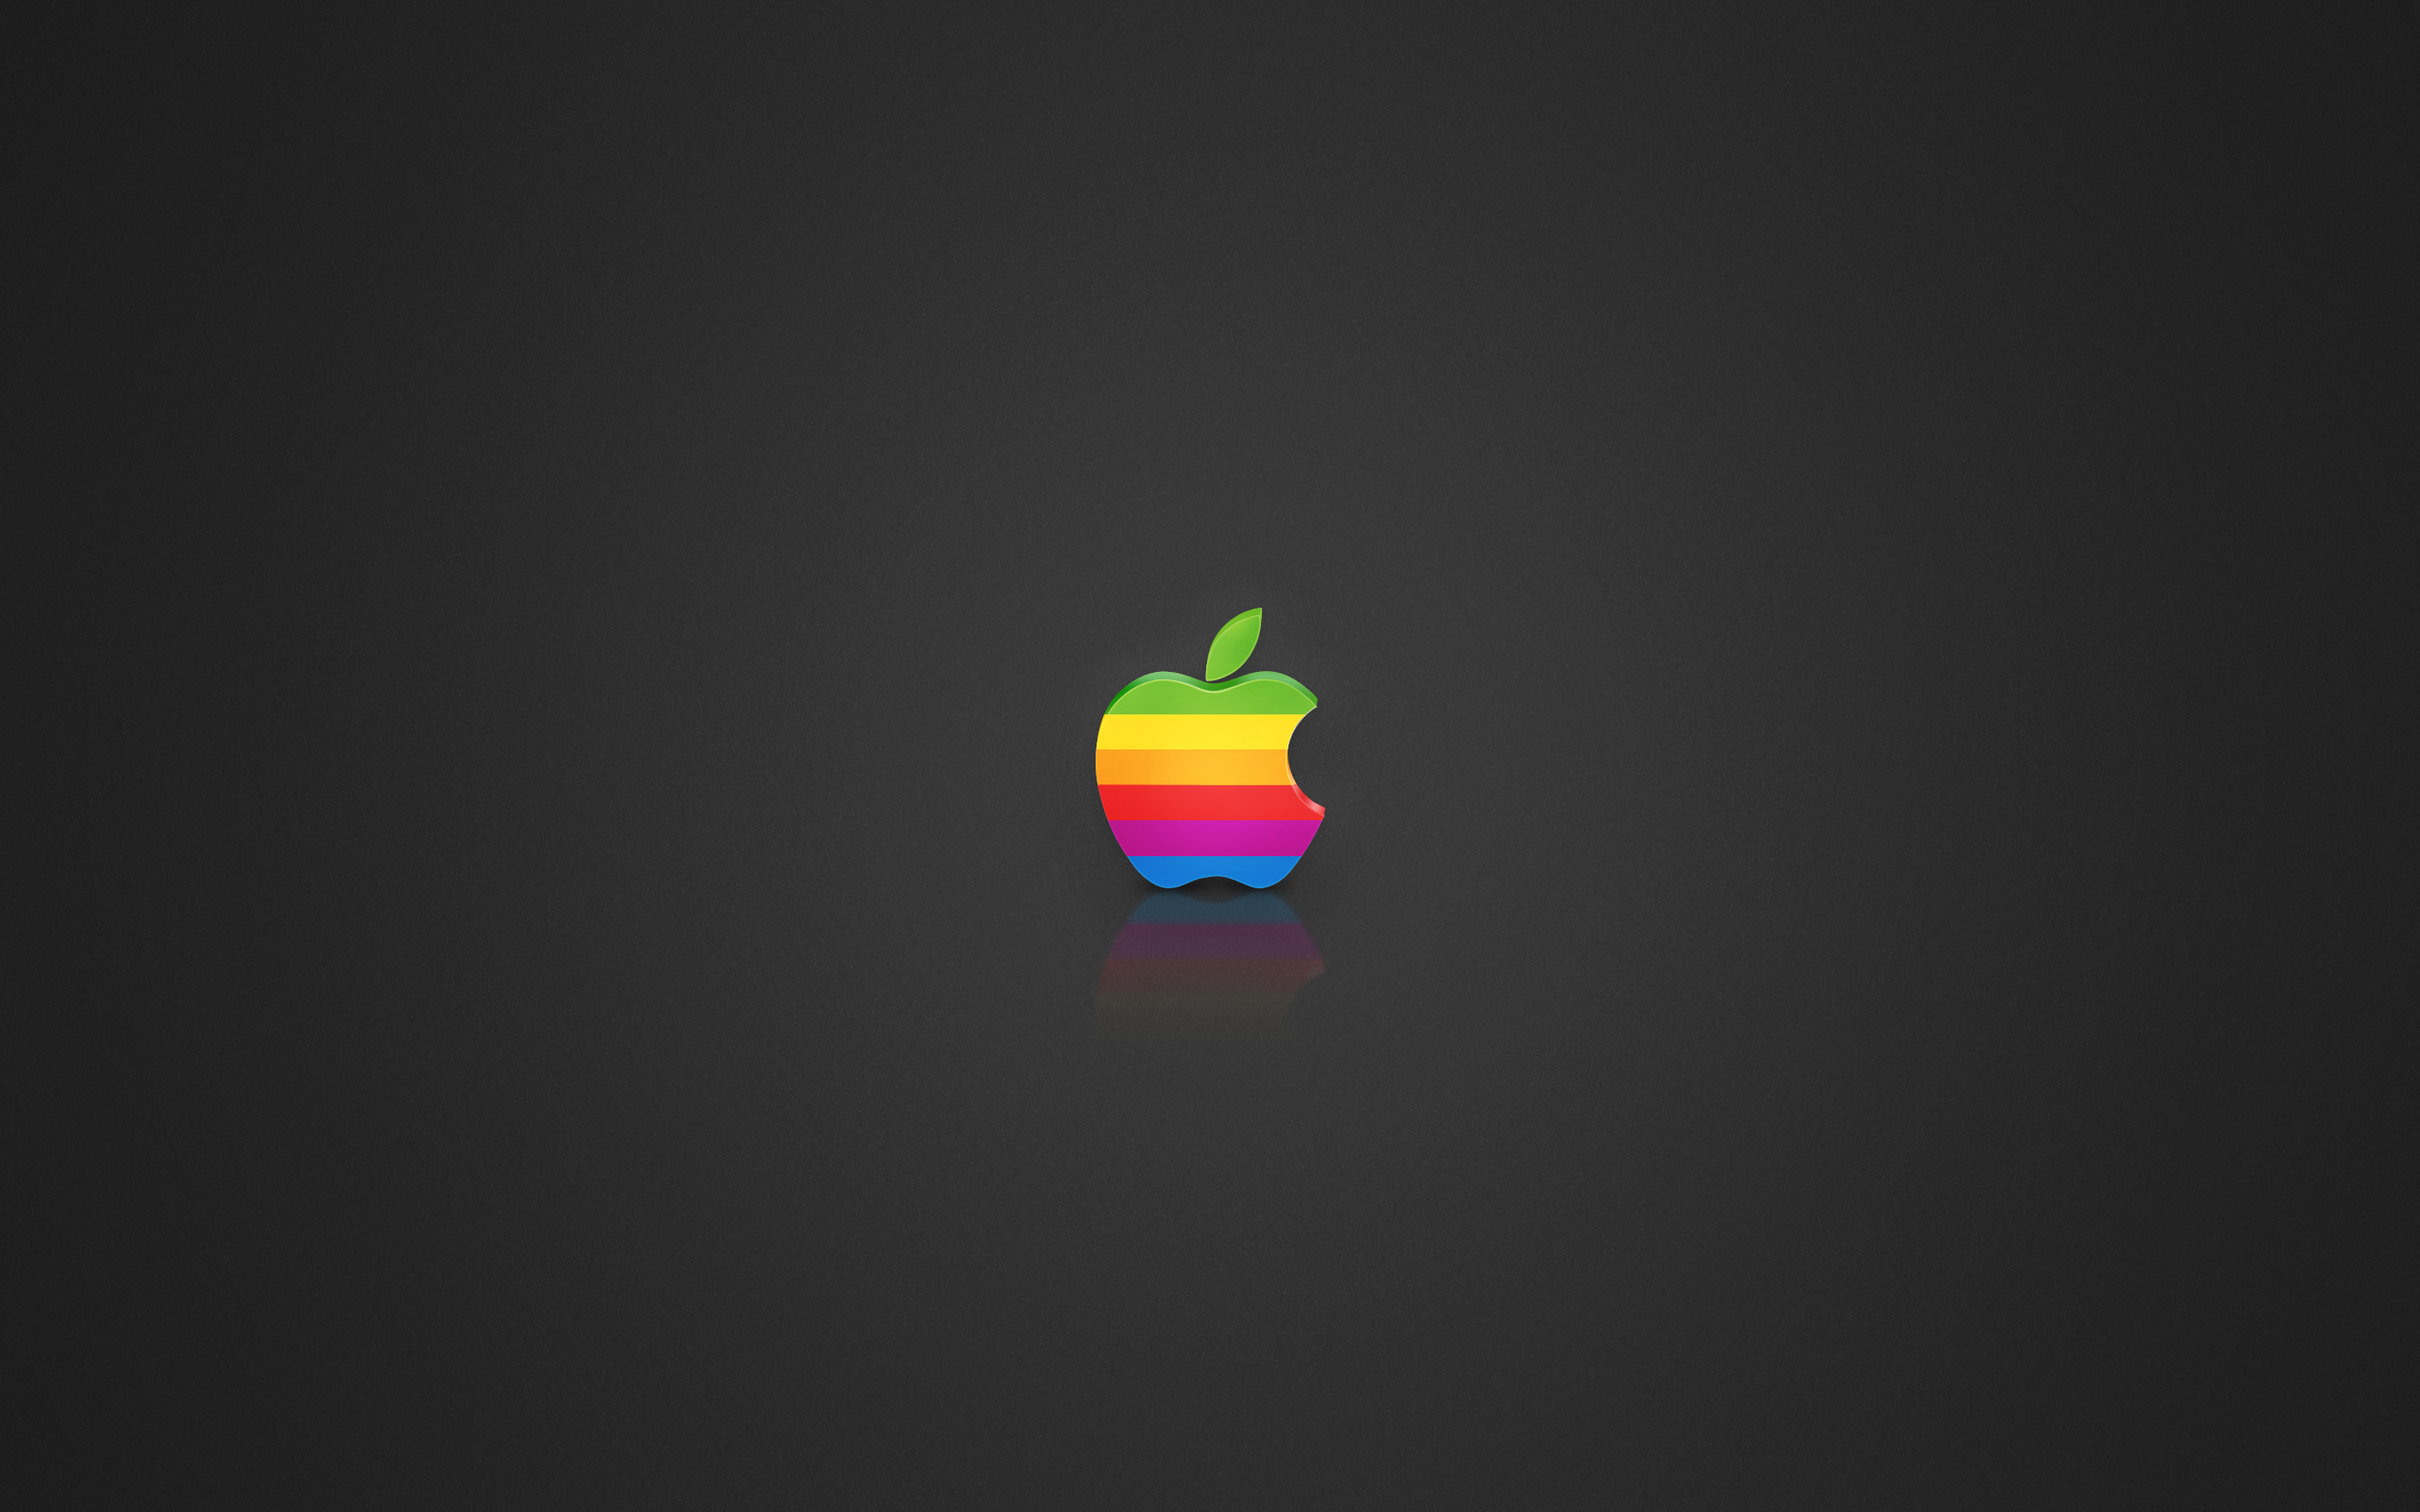 2560x1600 Coloured Apple logo desktop PC and Mac wallpaper 2560x1600